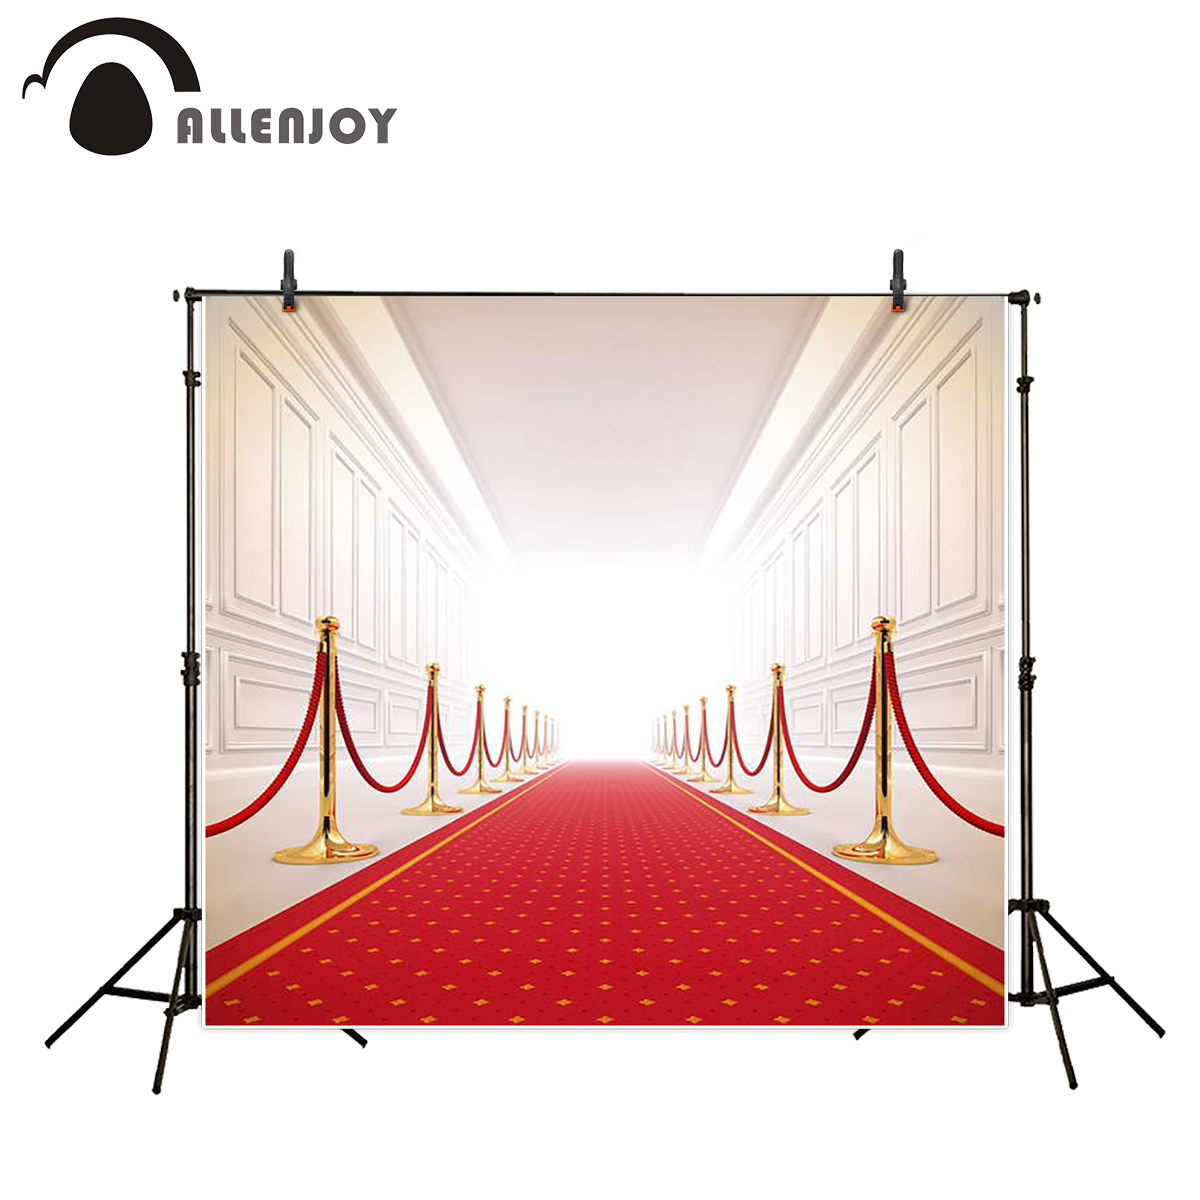 Allenjoy background photography red carpet white brick wall wedding backdrops fantasy props backdrop dark brown brick wall with white clock photography backdrops wedding background 200x300cm photo studio props fotografia